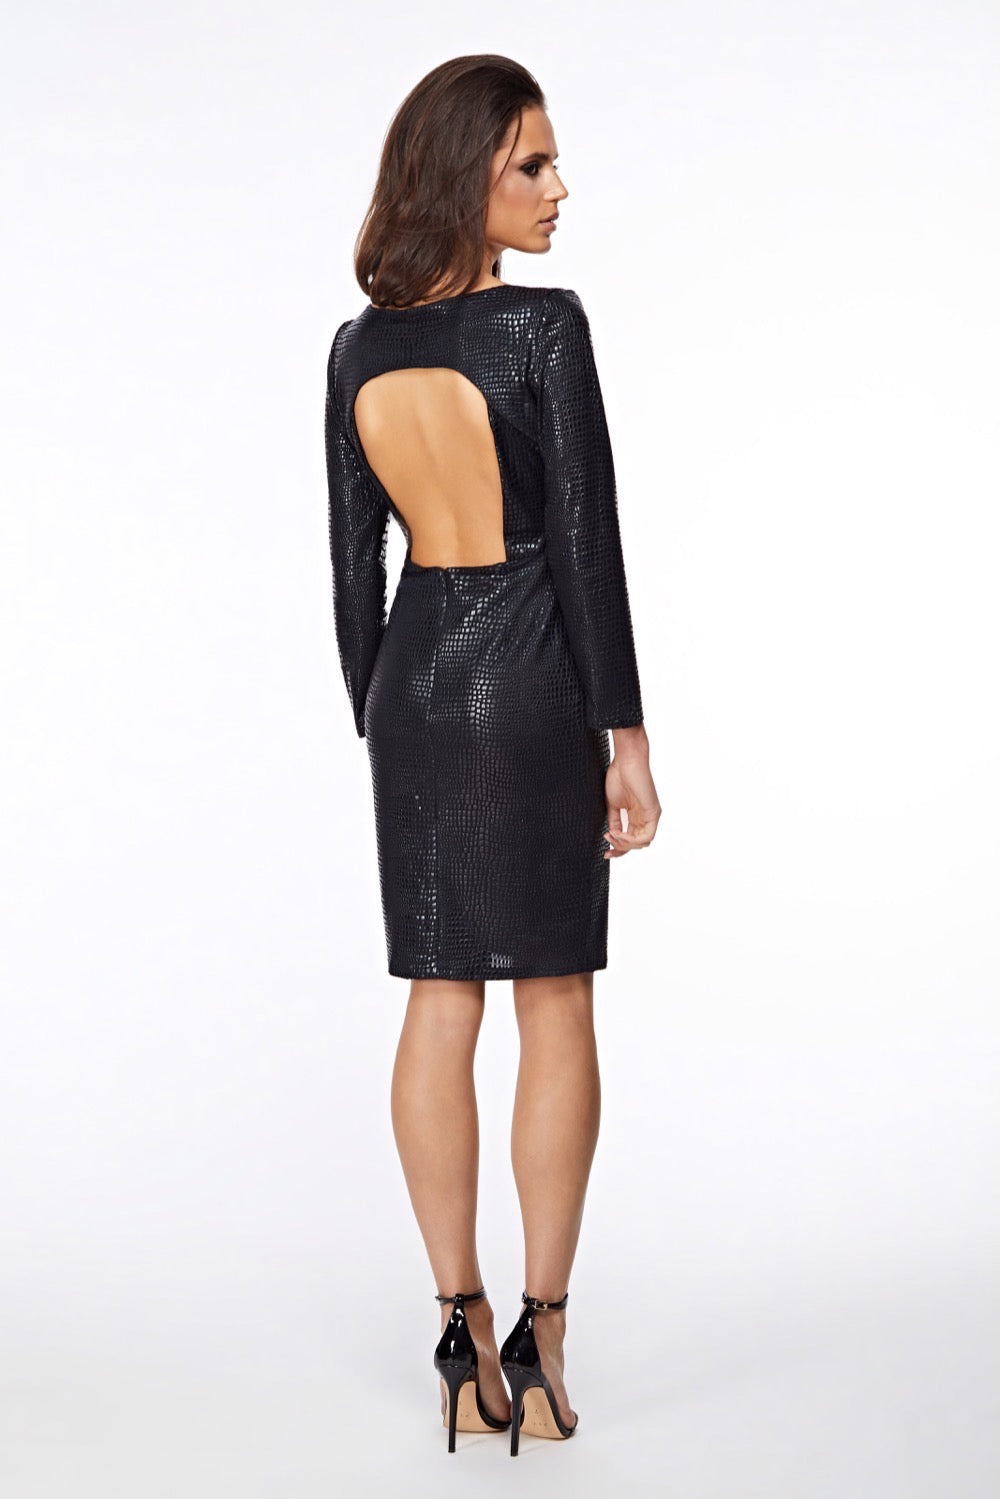 Hera Croc Black Backless Dress